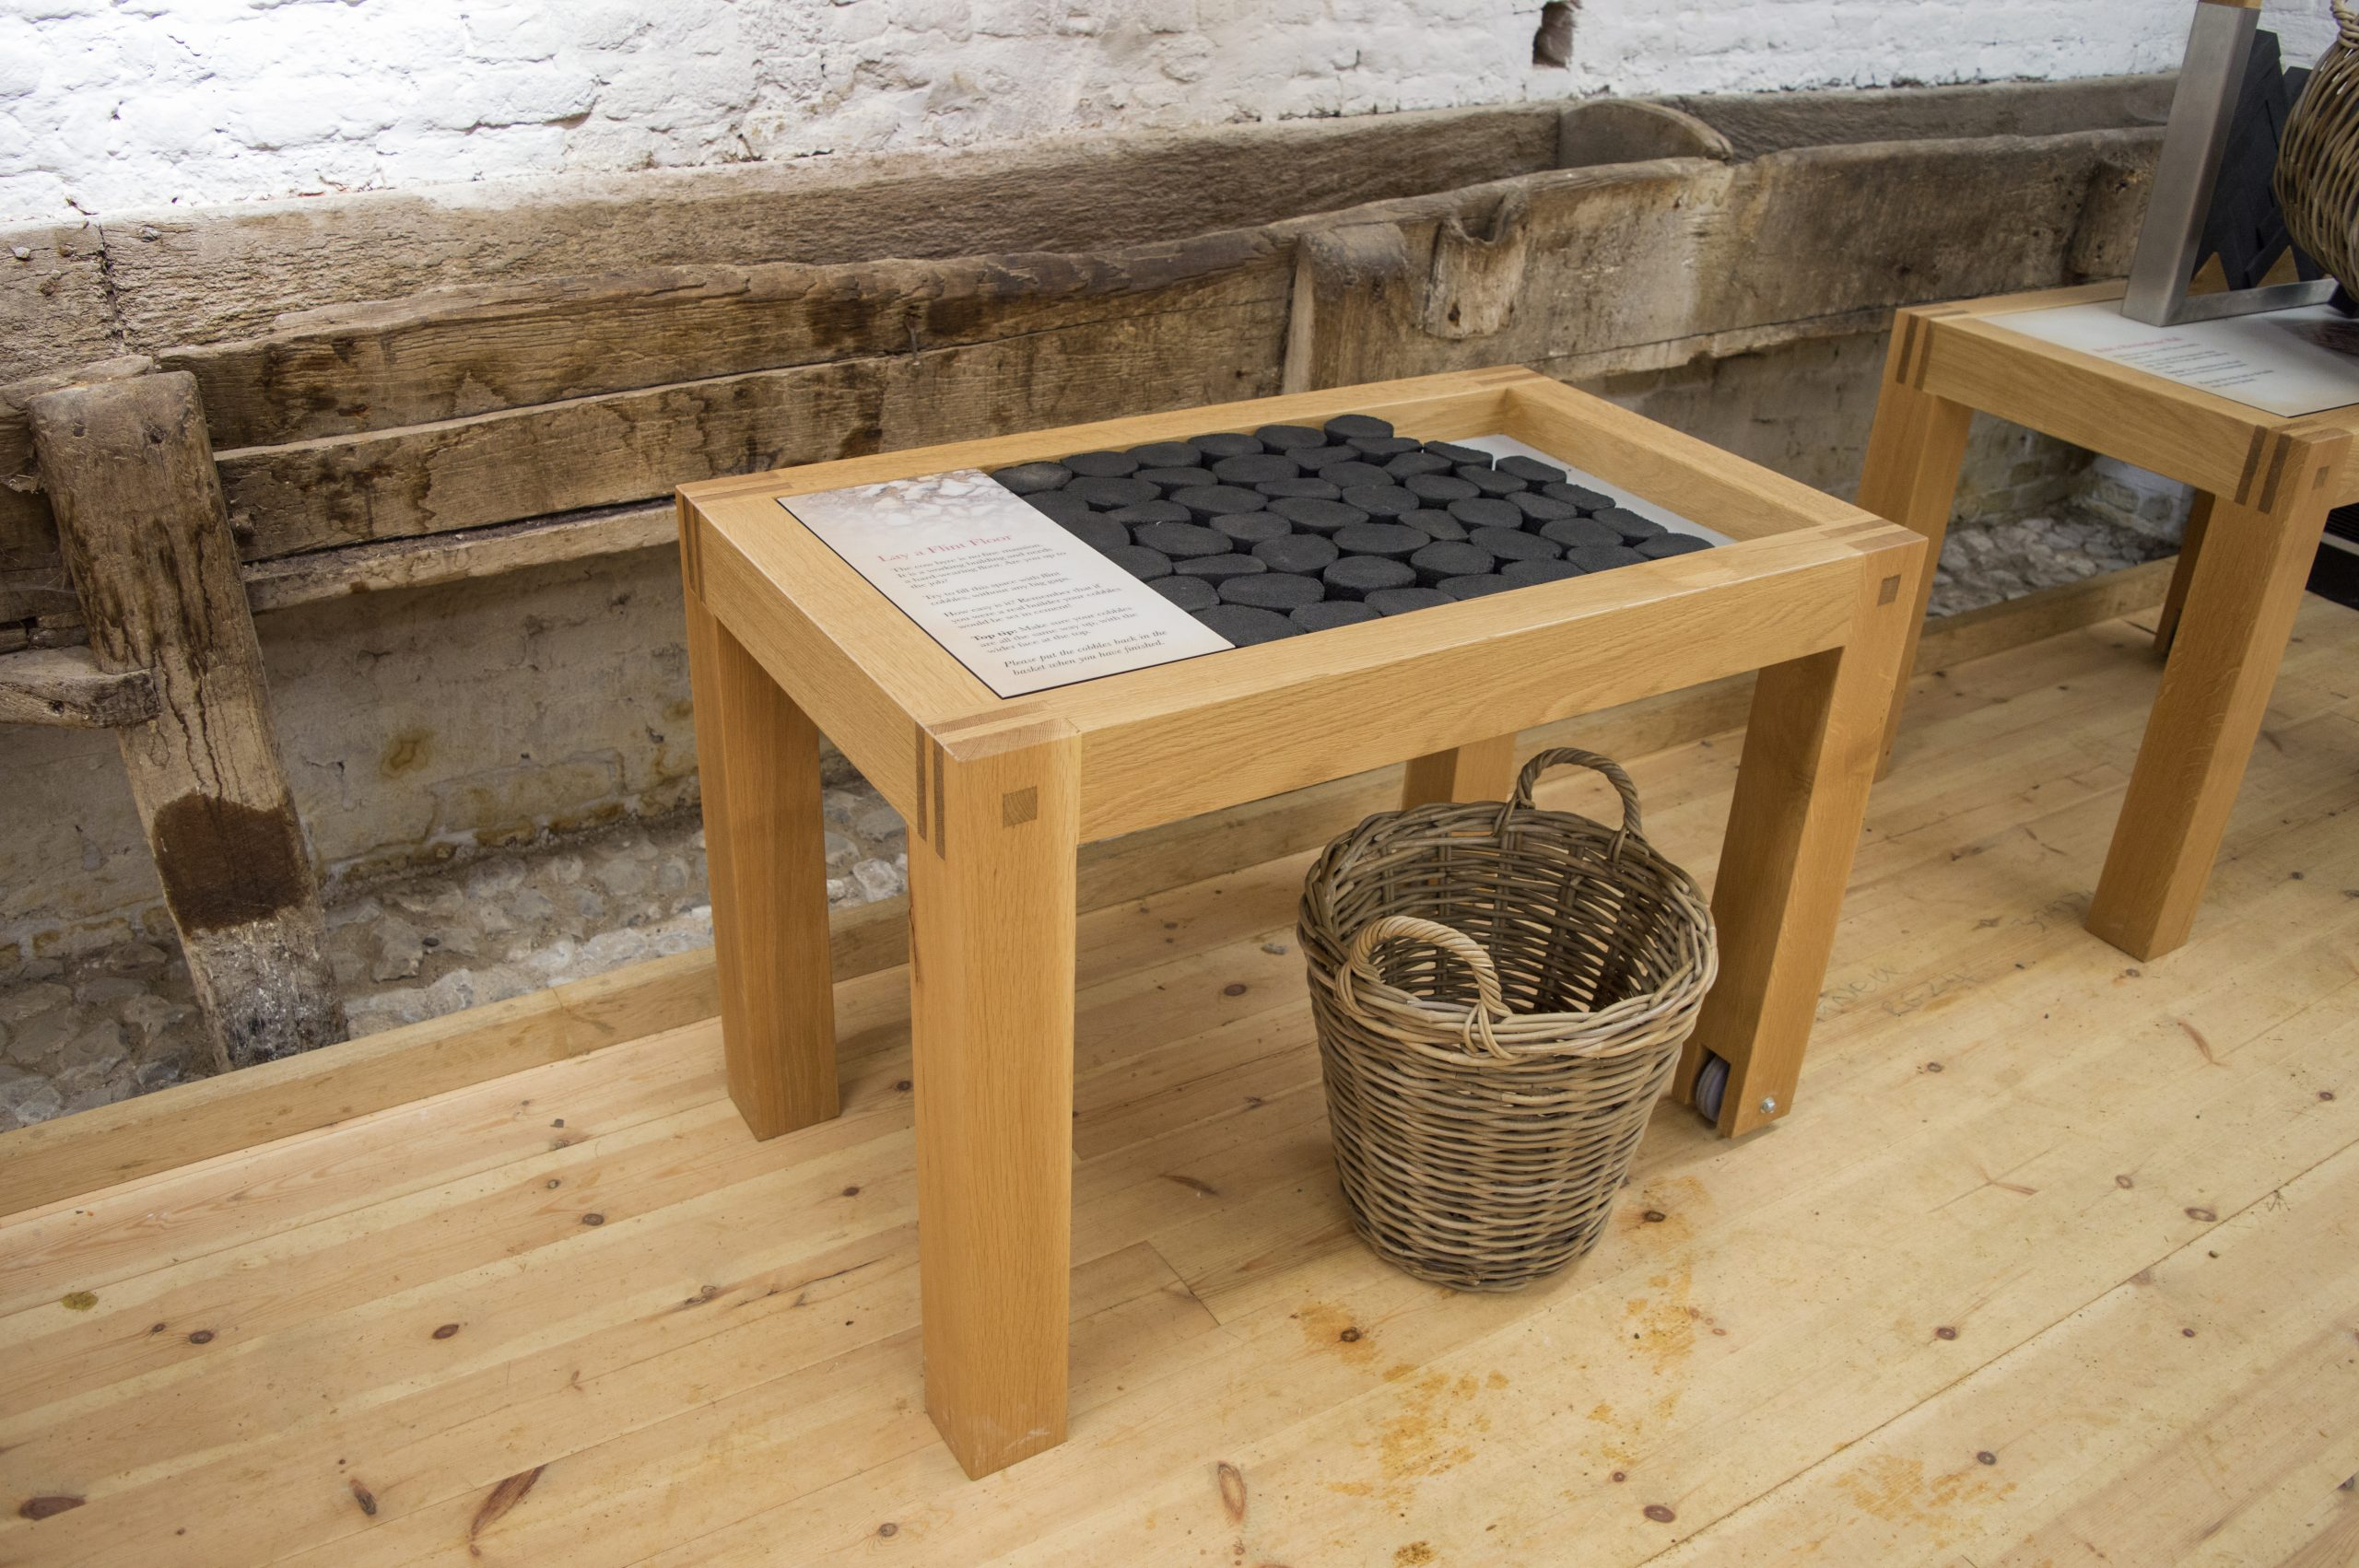 Old Basing House, hands-on interactive exhibit, lay a flint floor